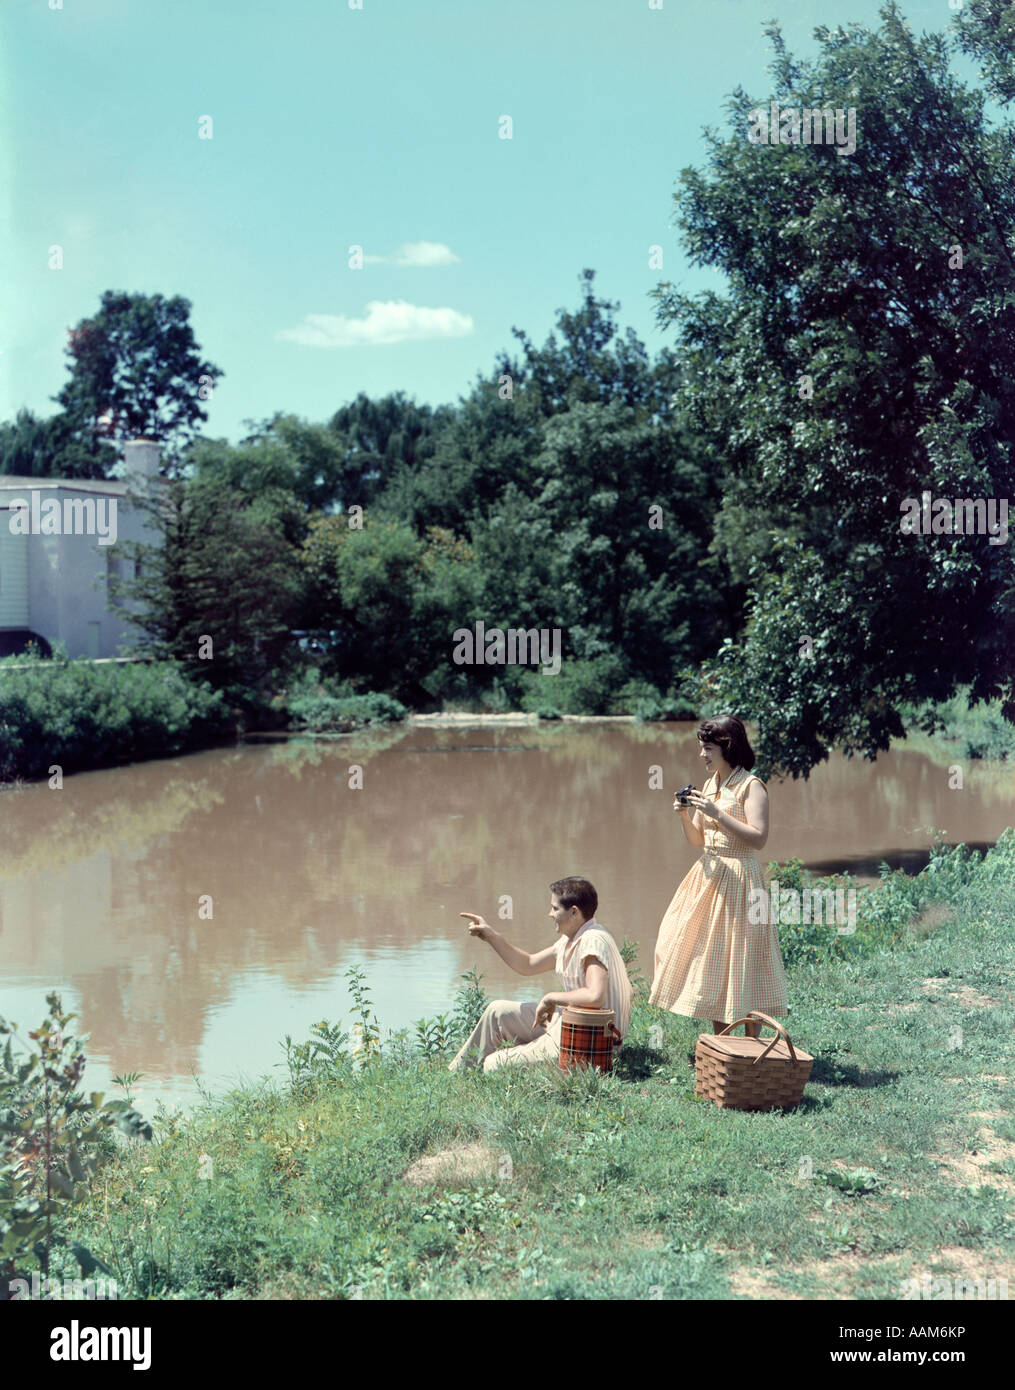 1950 1950s TEEN COUPLE BOY GIRL PICNIC BASKET ON BANK OF STREAM SUMMER DAY DATE CAMERA RETRO - Stock Image